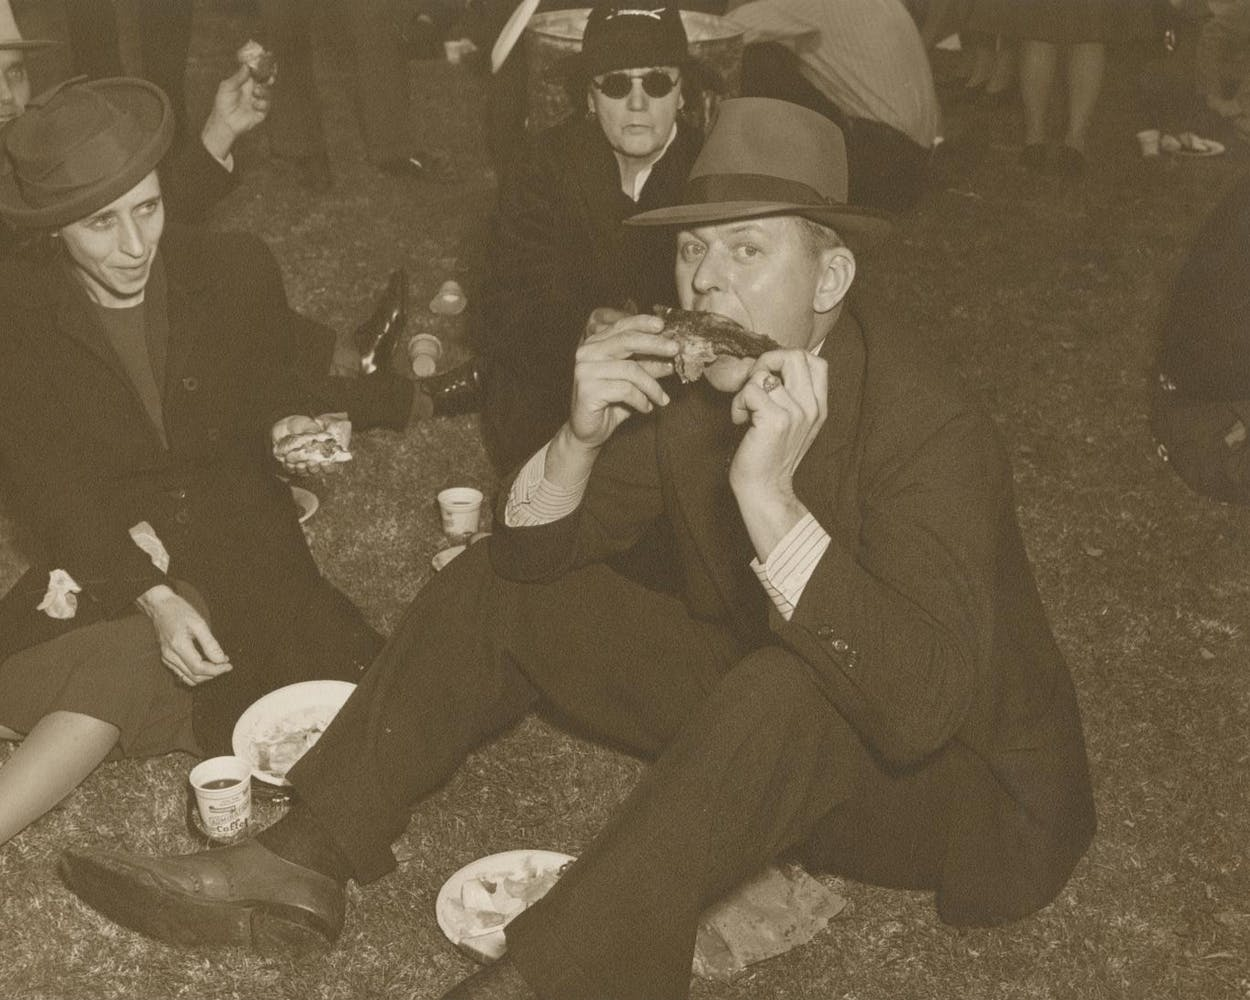 A man sitting on the ground, eating barbecue ribs, in the early 1940s.